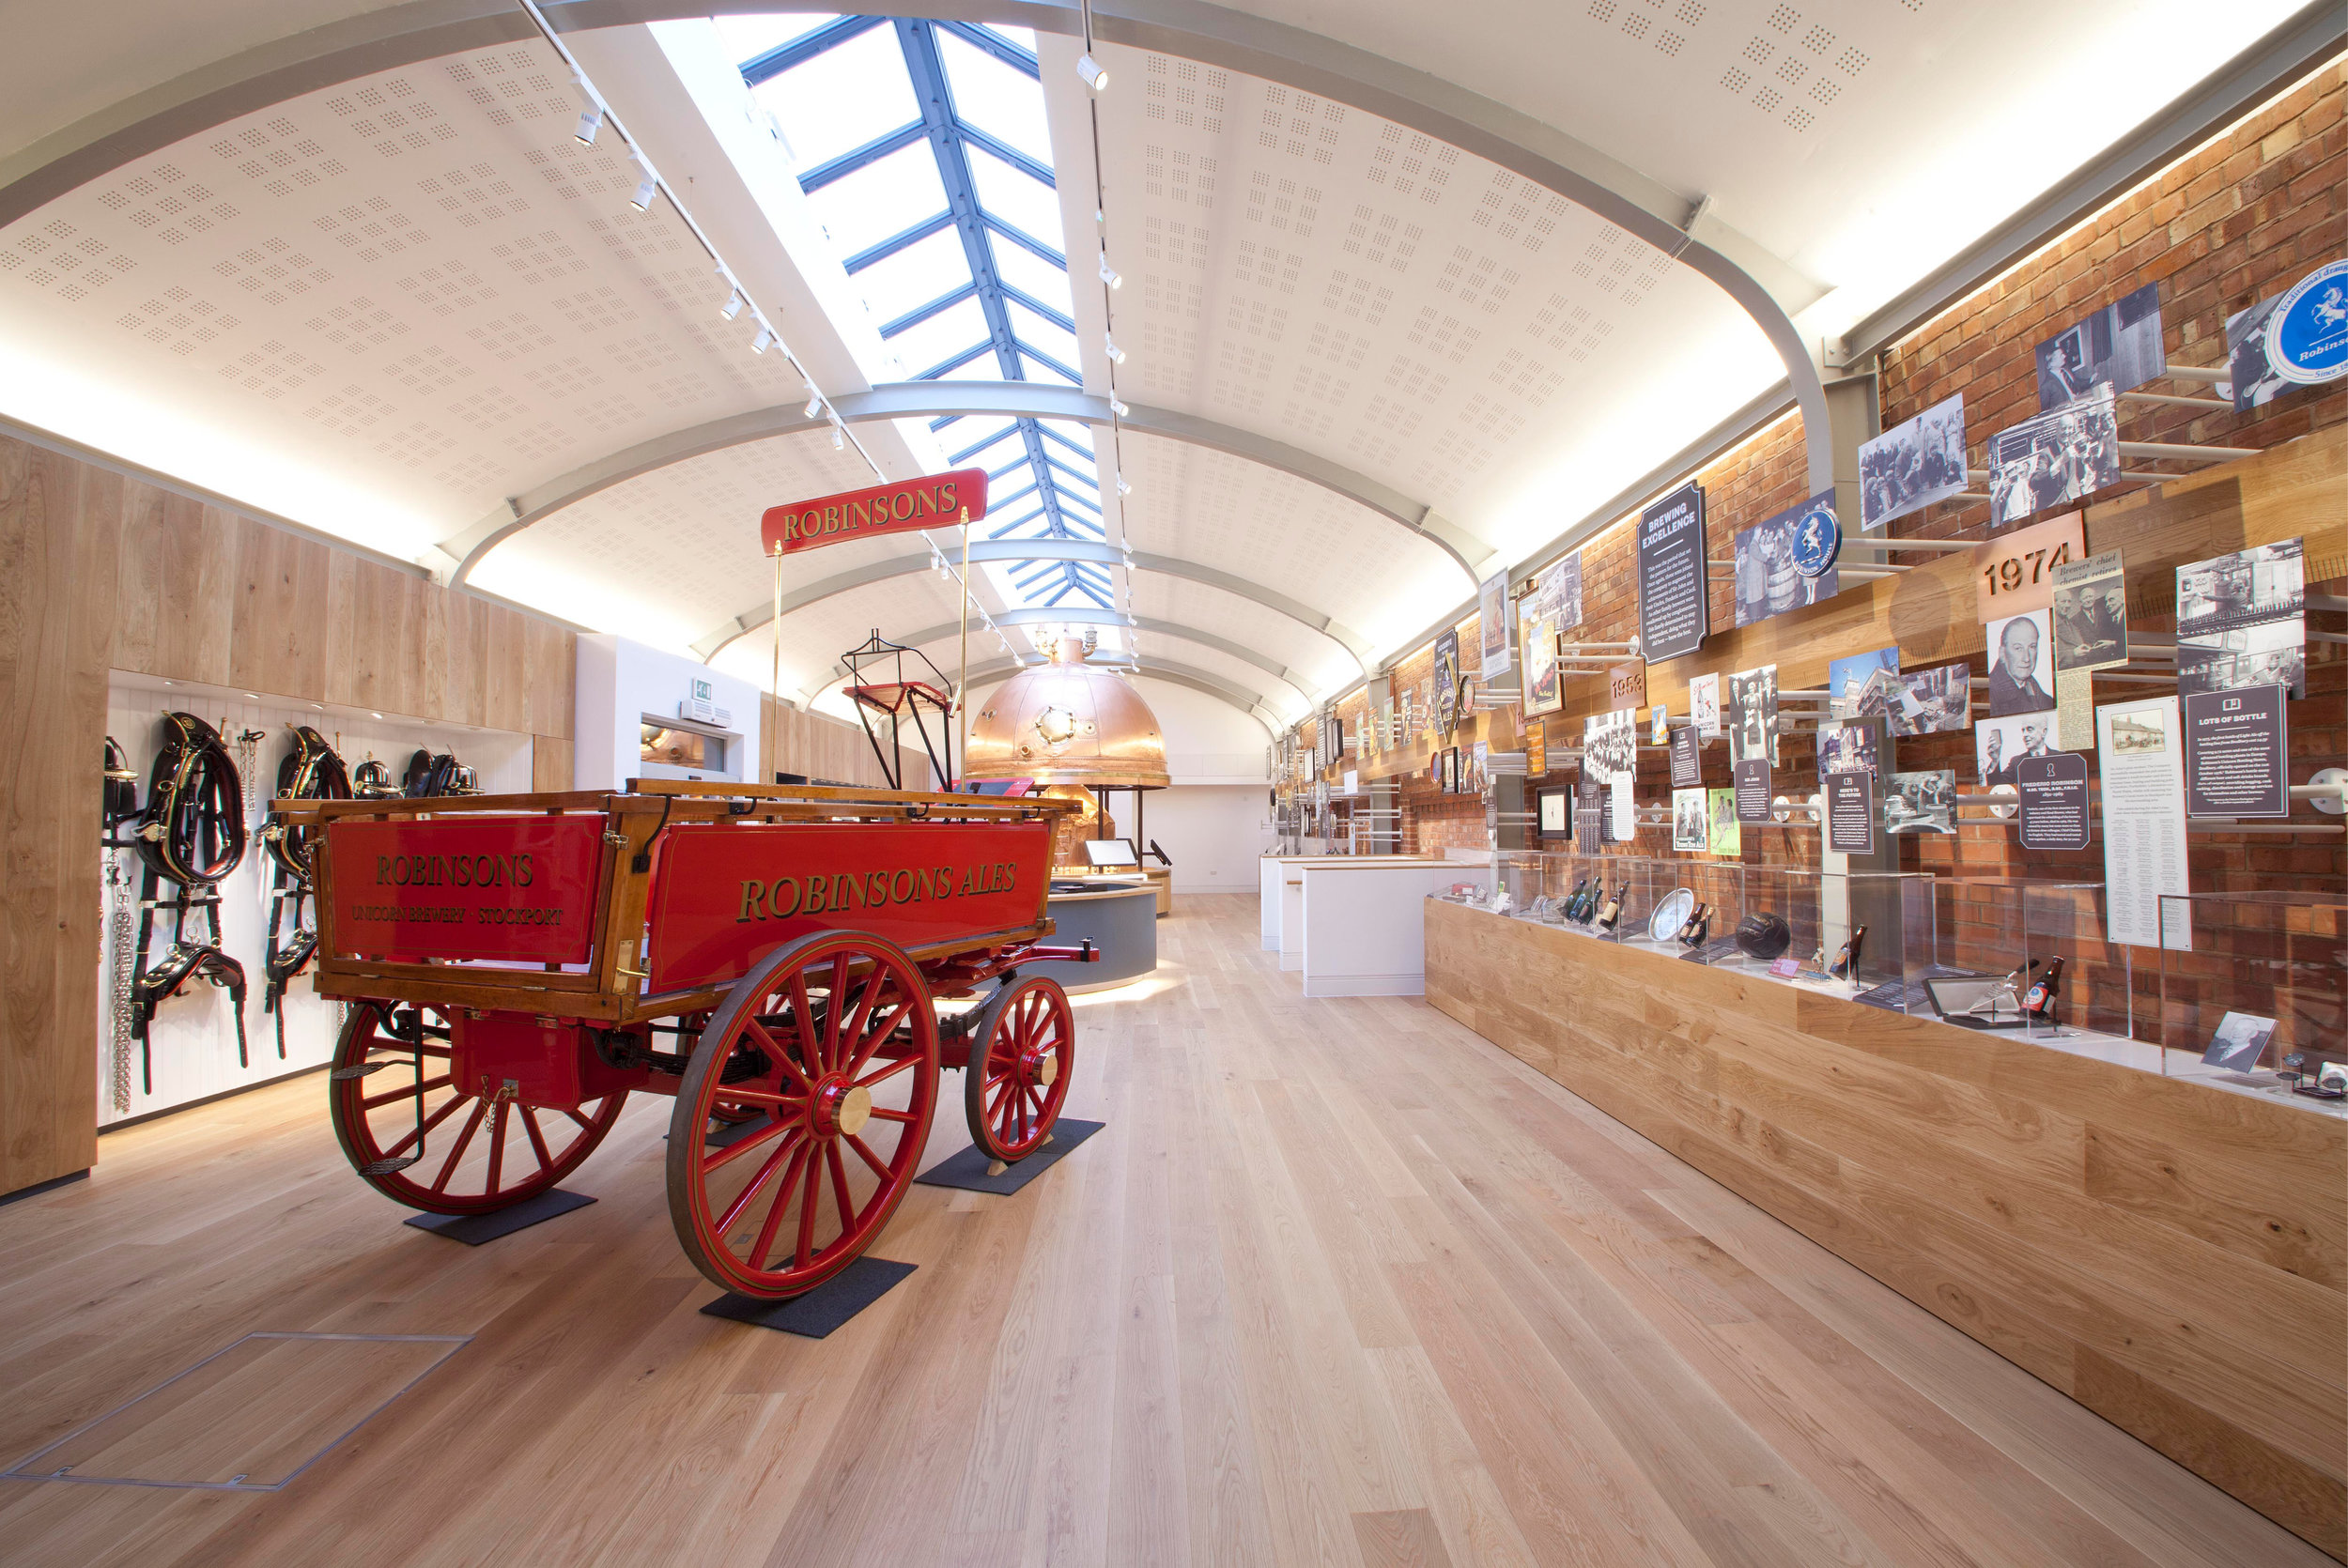 Mowat and Company Interior Fit Out for Robinsons Brewery